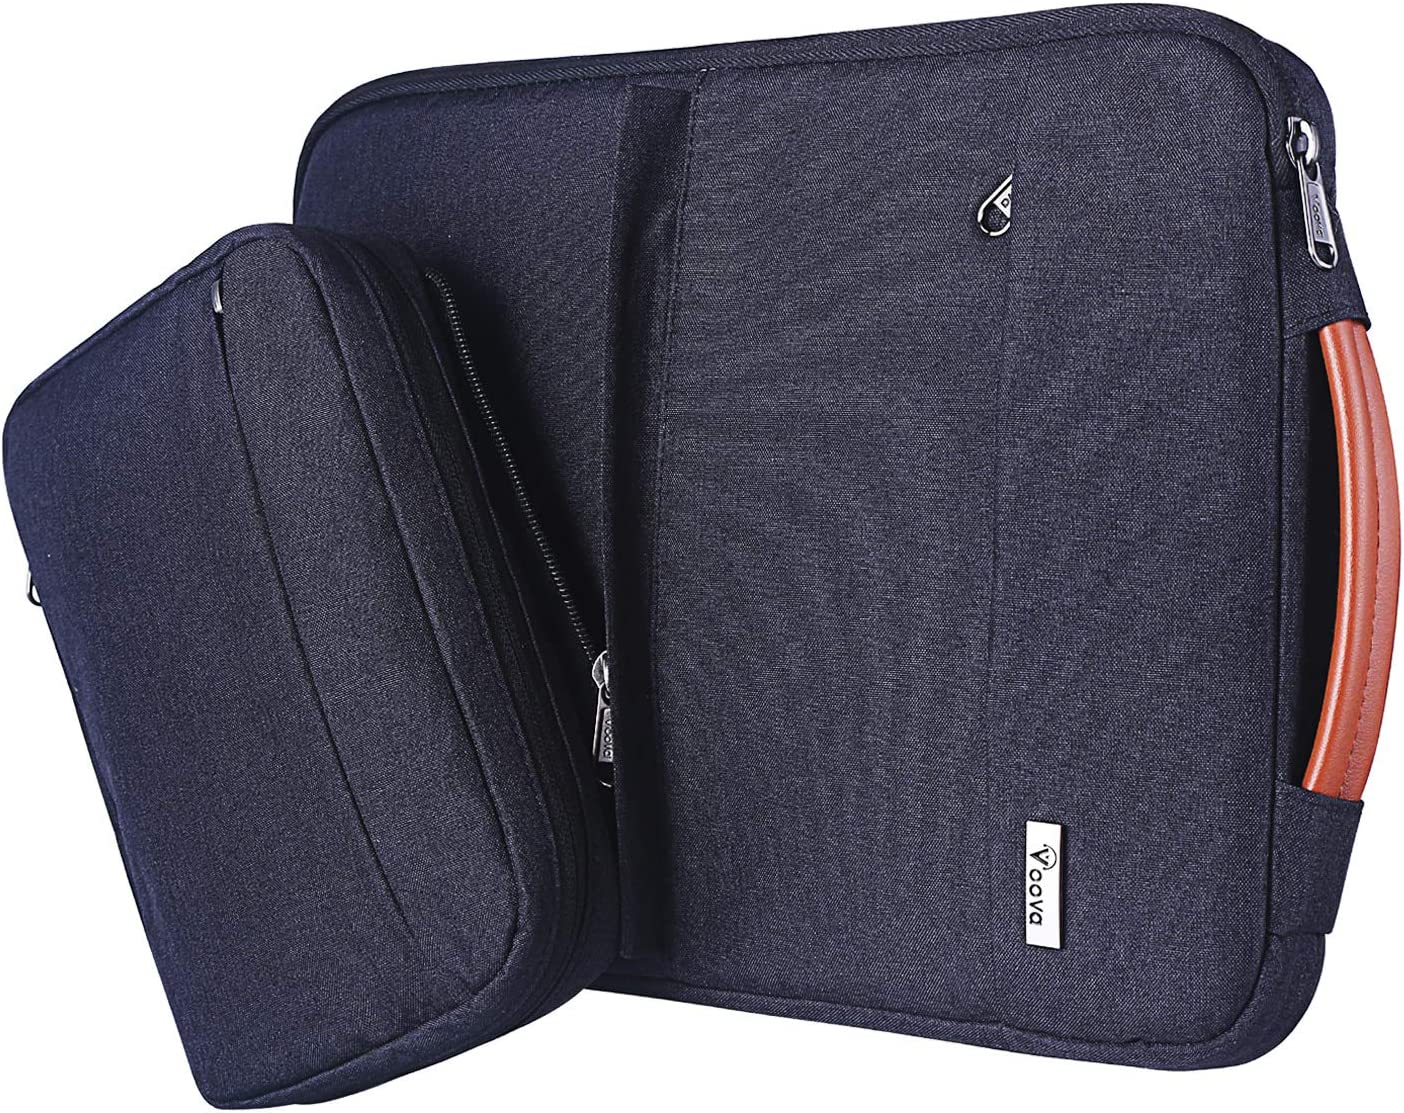 Voova Laptop Sleeve Case, Upgrade Smart Computer Carry Bag with Detachable Accessory Pouch Compatible with 13-13.3 Inch MacBook Air/MacBook Pro, 13.5 Surface Book 2,13 XPS/Chromebook, Waterproof